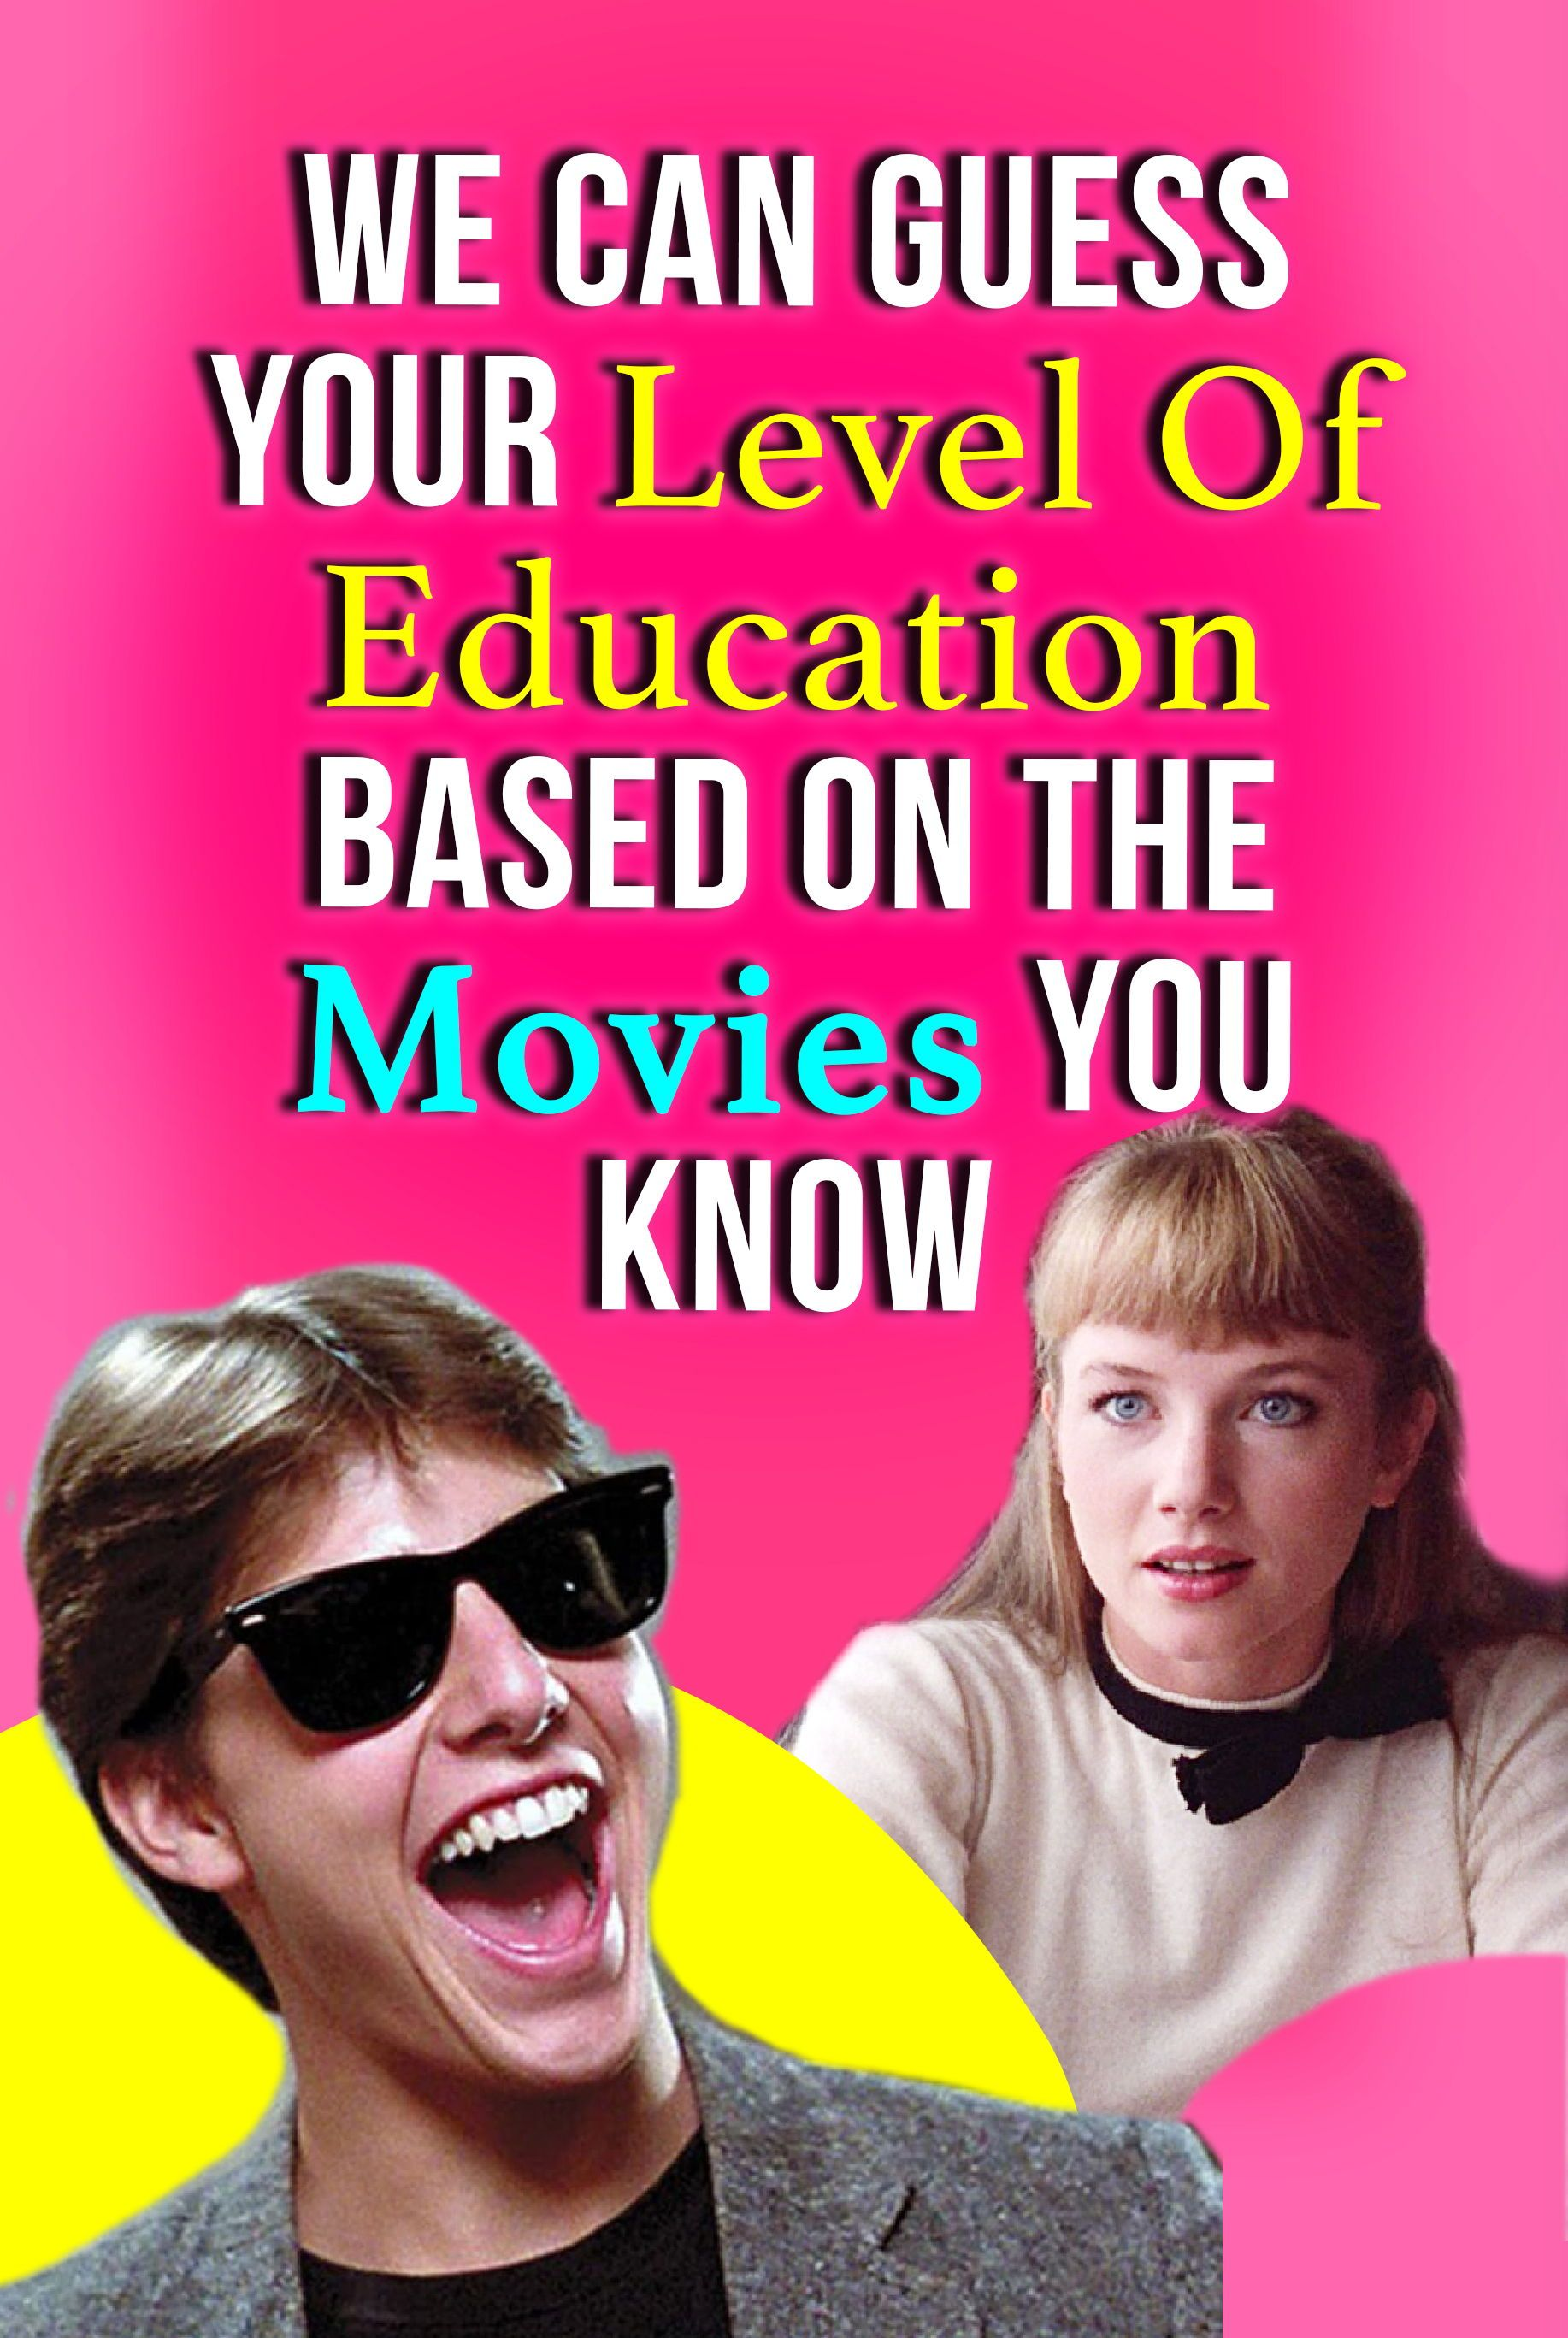 At Movies Films Focused On Education >> Quiz We Can Guess Your Level Of Education Based On The Movies You